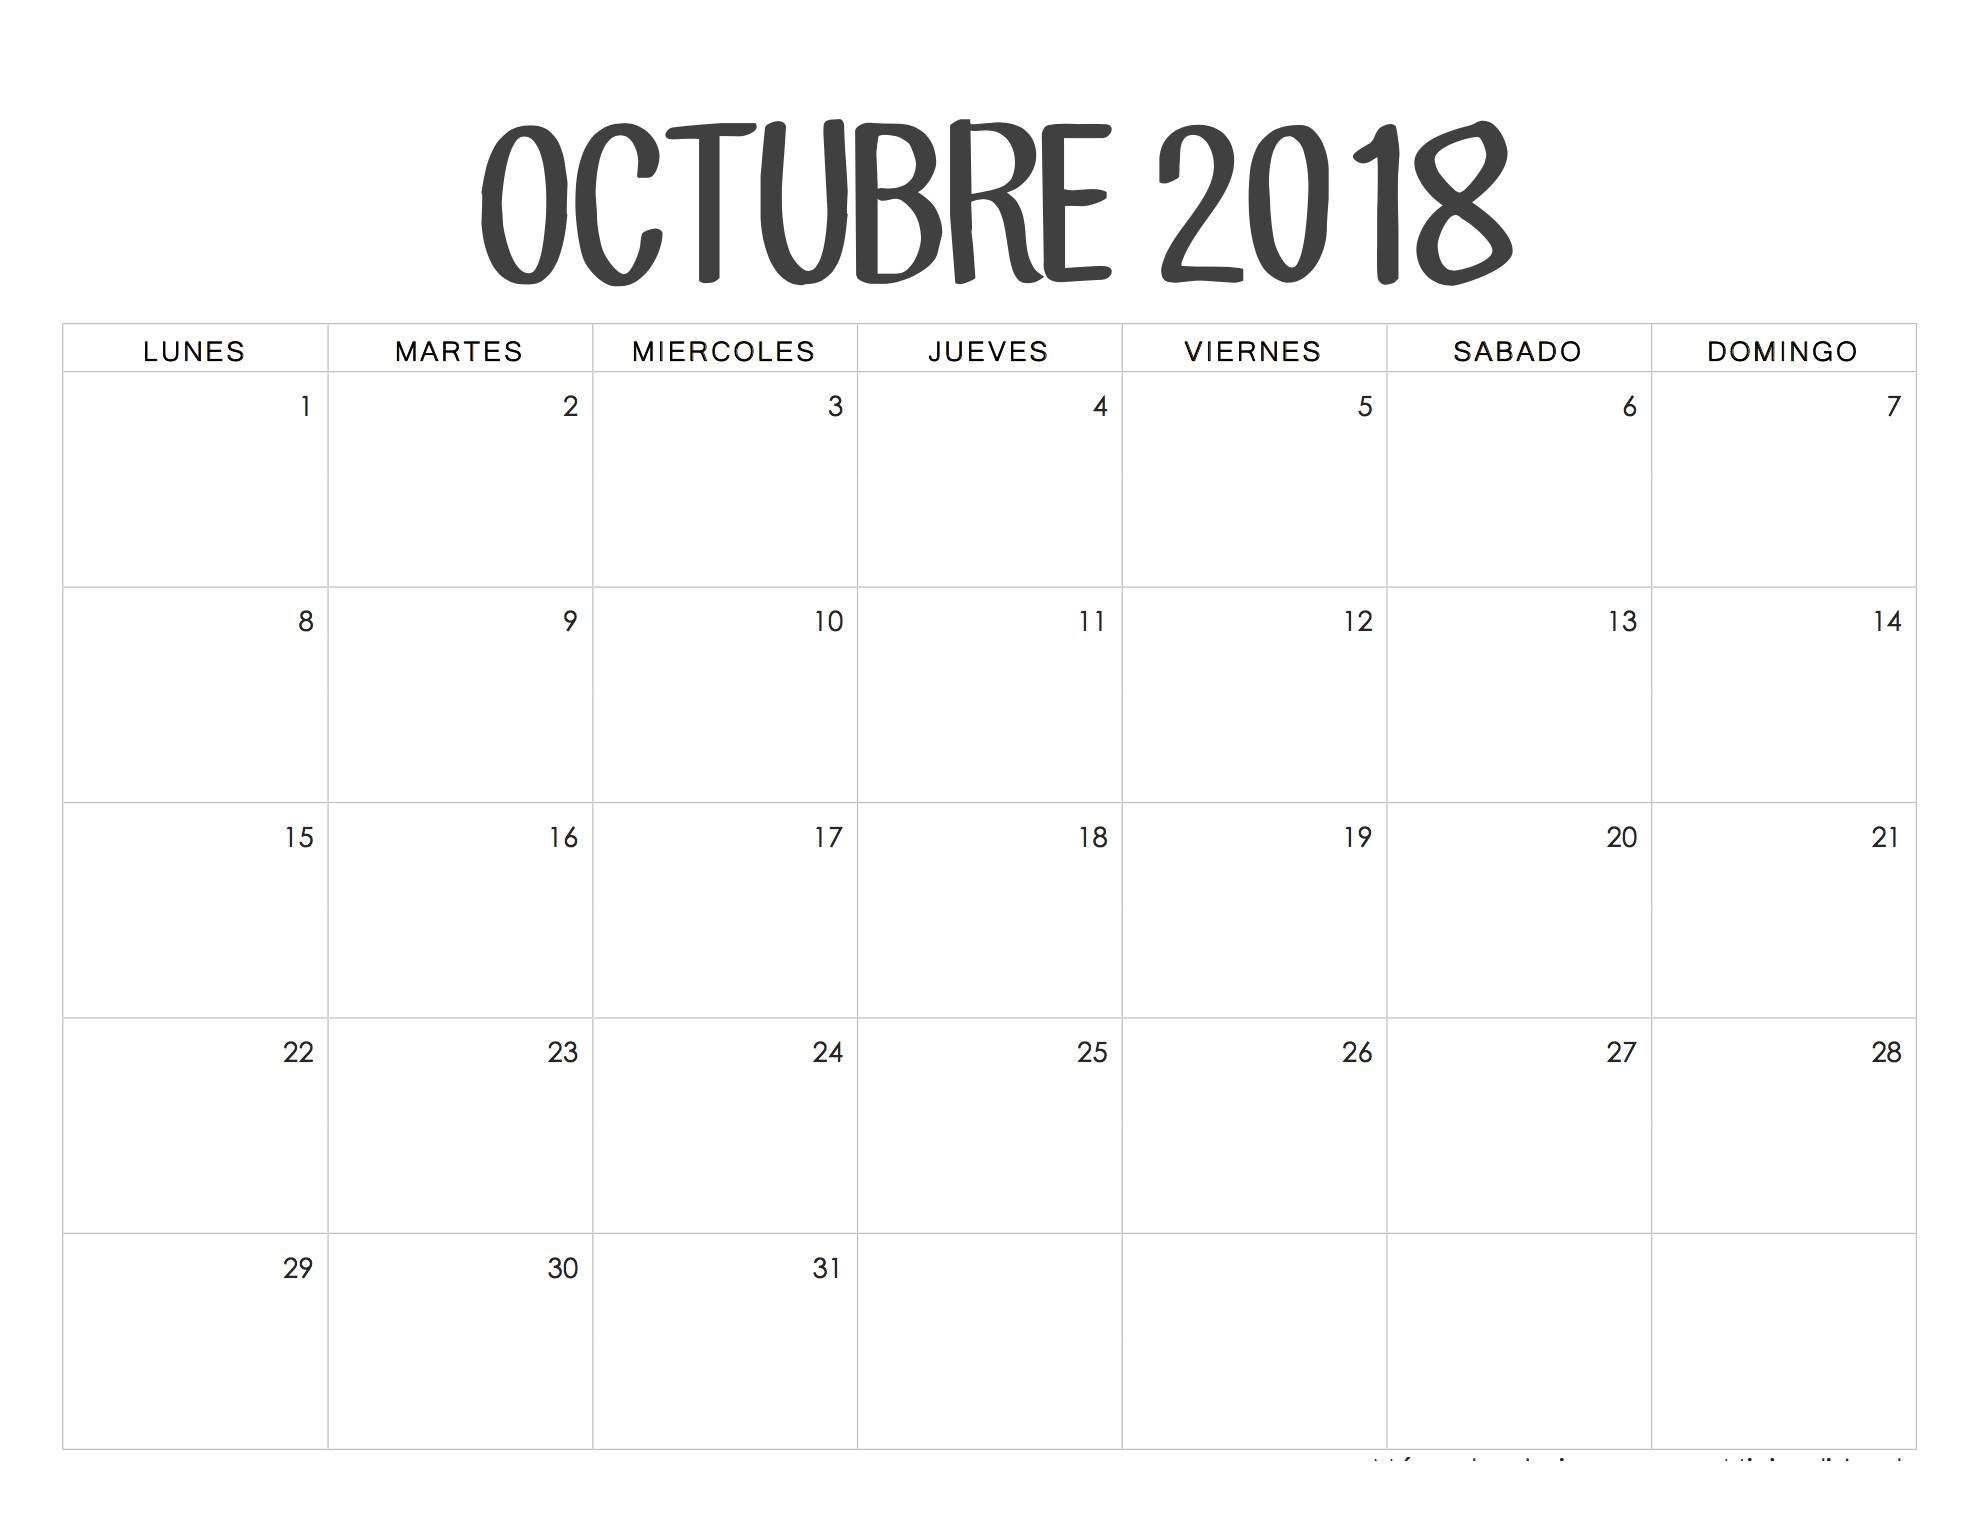 Calendarios 2019 Para Imprimir Blanco Y Negro Actual Calendario Octubre 2018 Chile L Pinterest Of Calendarios 2019 Para Imprimir Blanco Y Negro Actual Calendario Octubre 2018 Chile L Pinterest